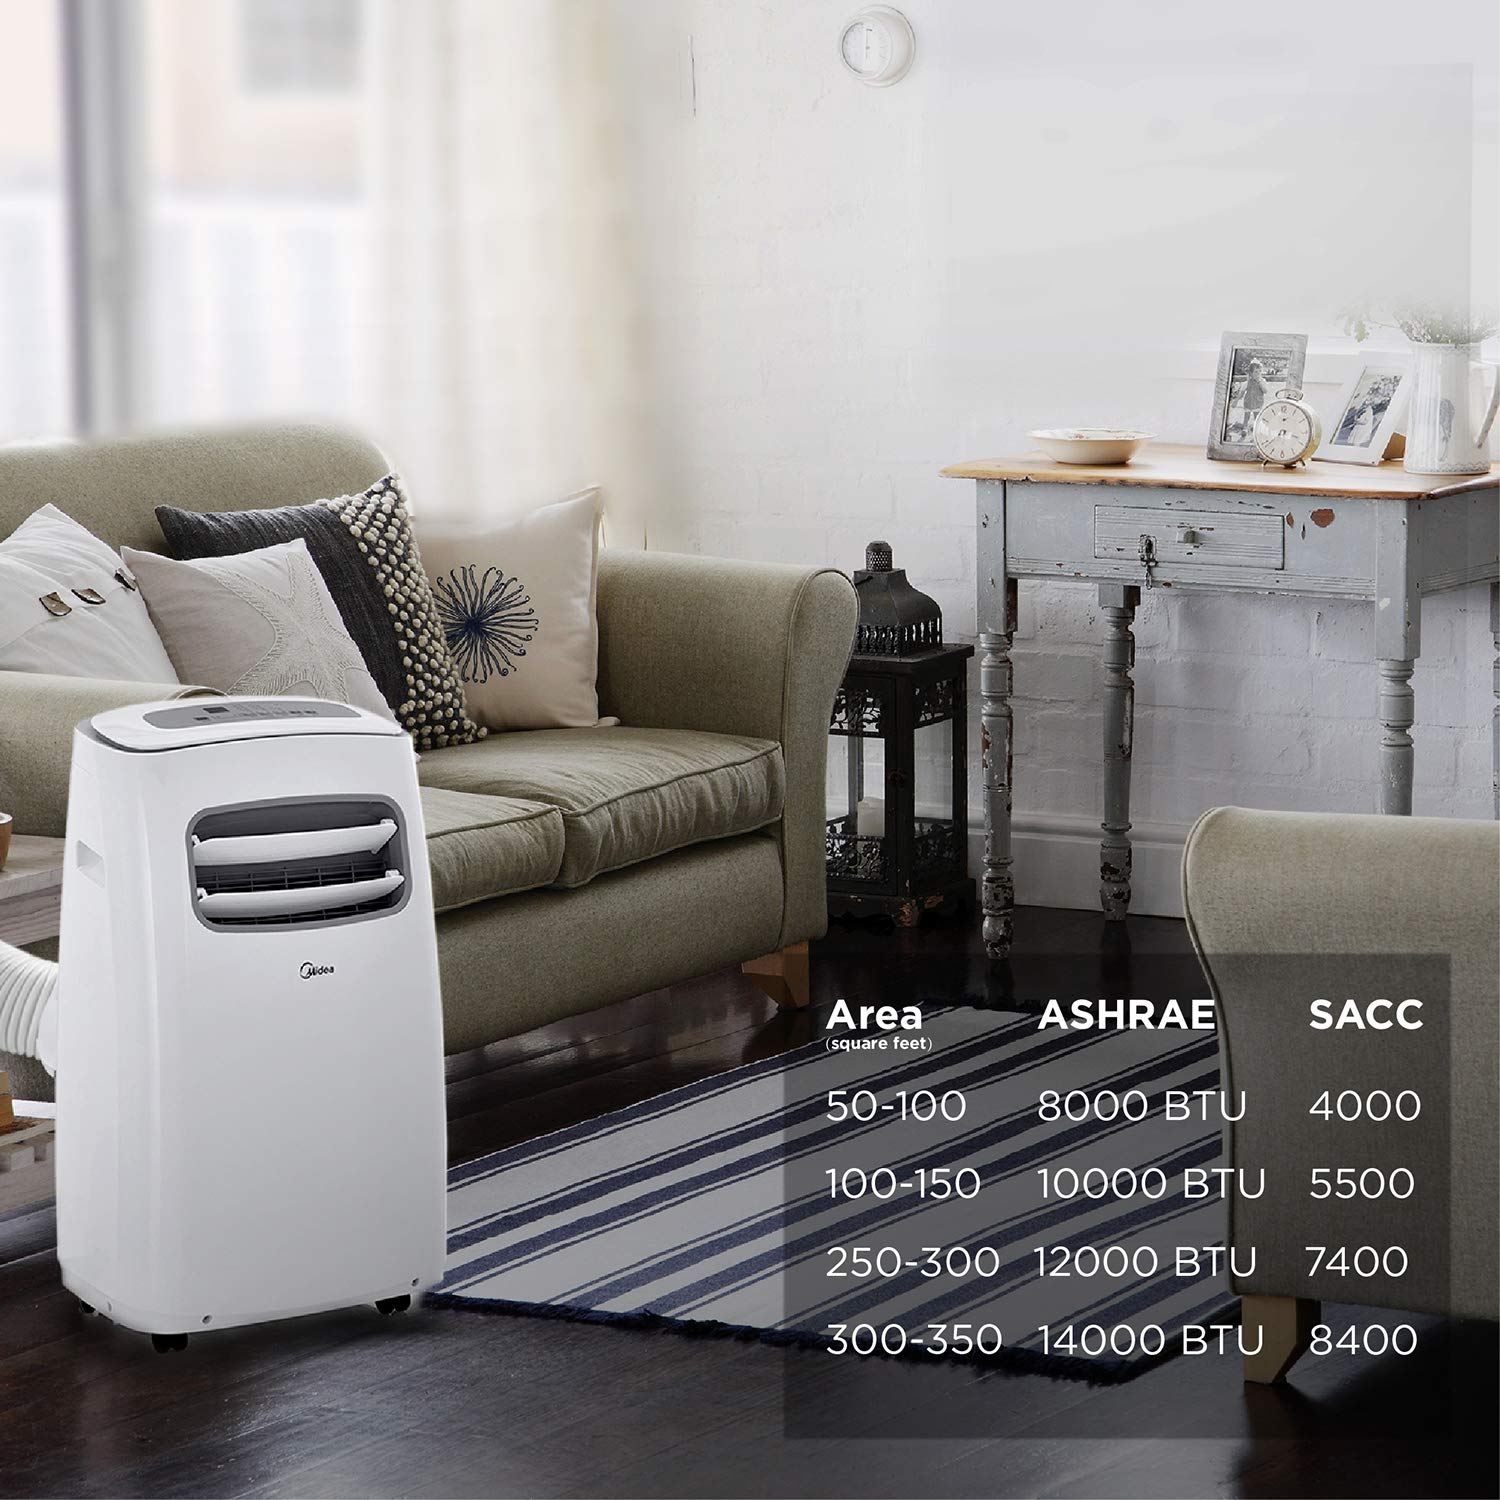 MIDEA Portable Air Conditioner 8000 BTU Easycool AC (Cooling, Dehumidifier and Fan Functions) for Rooms up to 100 Sq, ft. Standing Air Conditioning